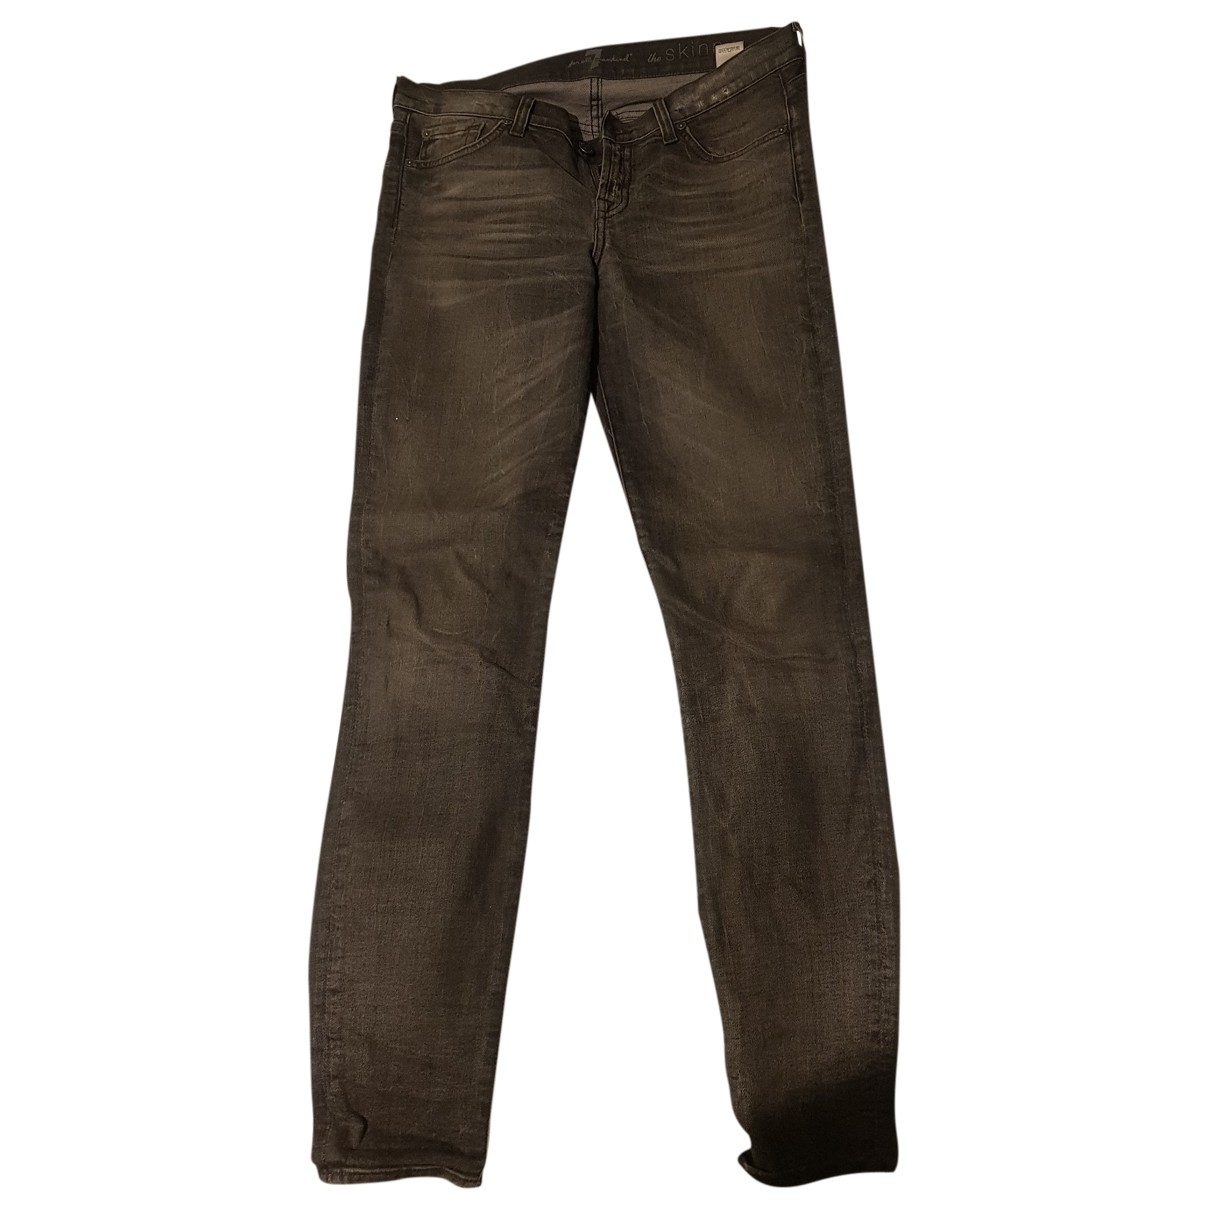 7 For All Mankind \N Grey Denim - Jeans Jeans for Women 28 US